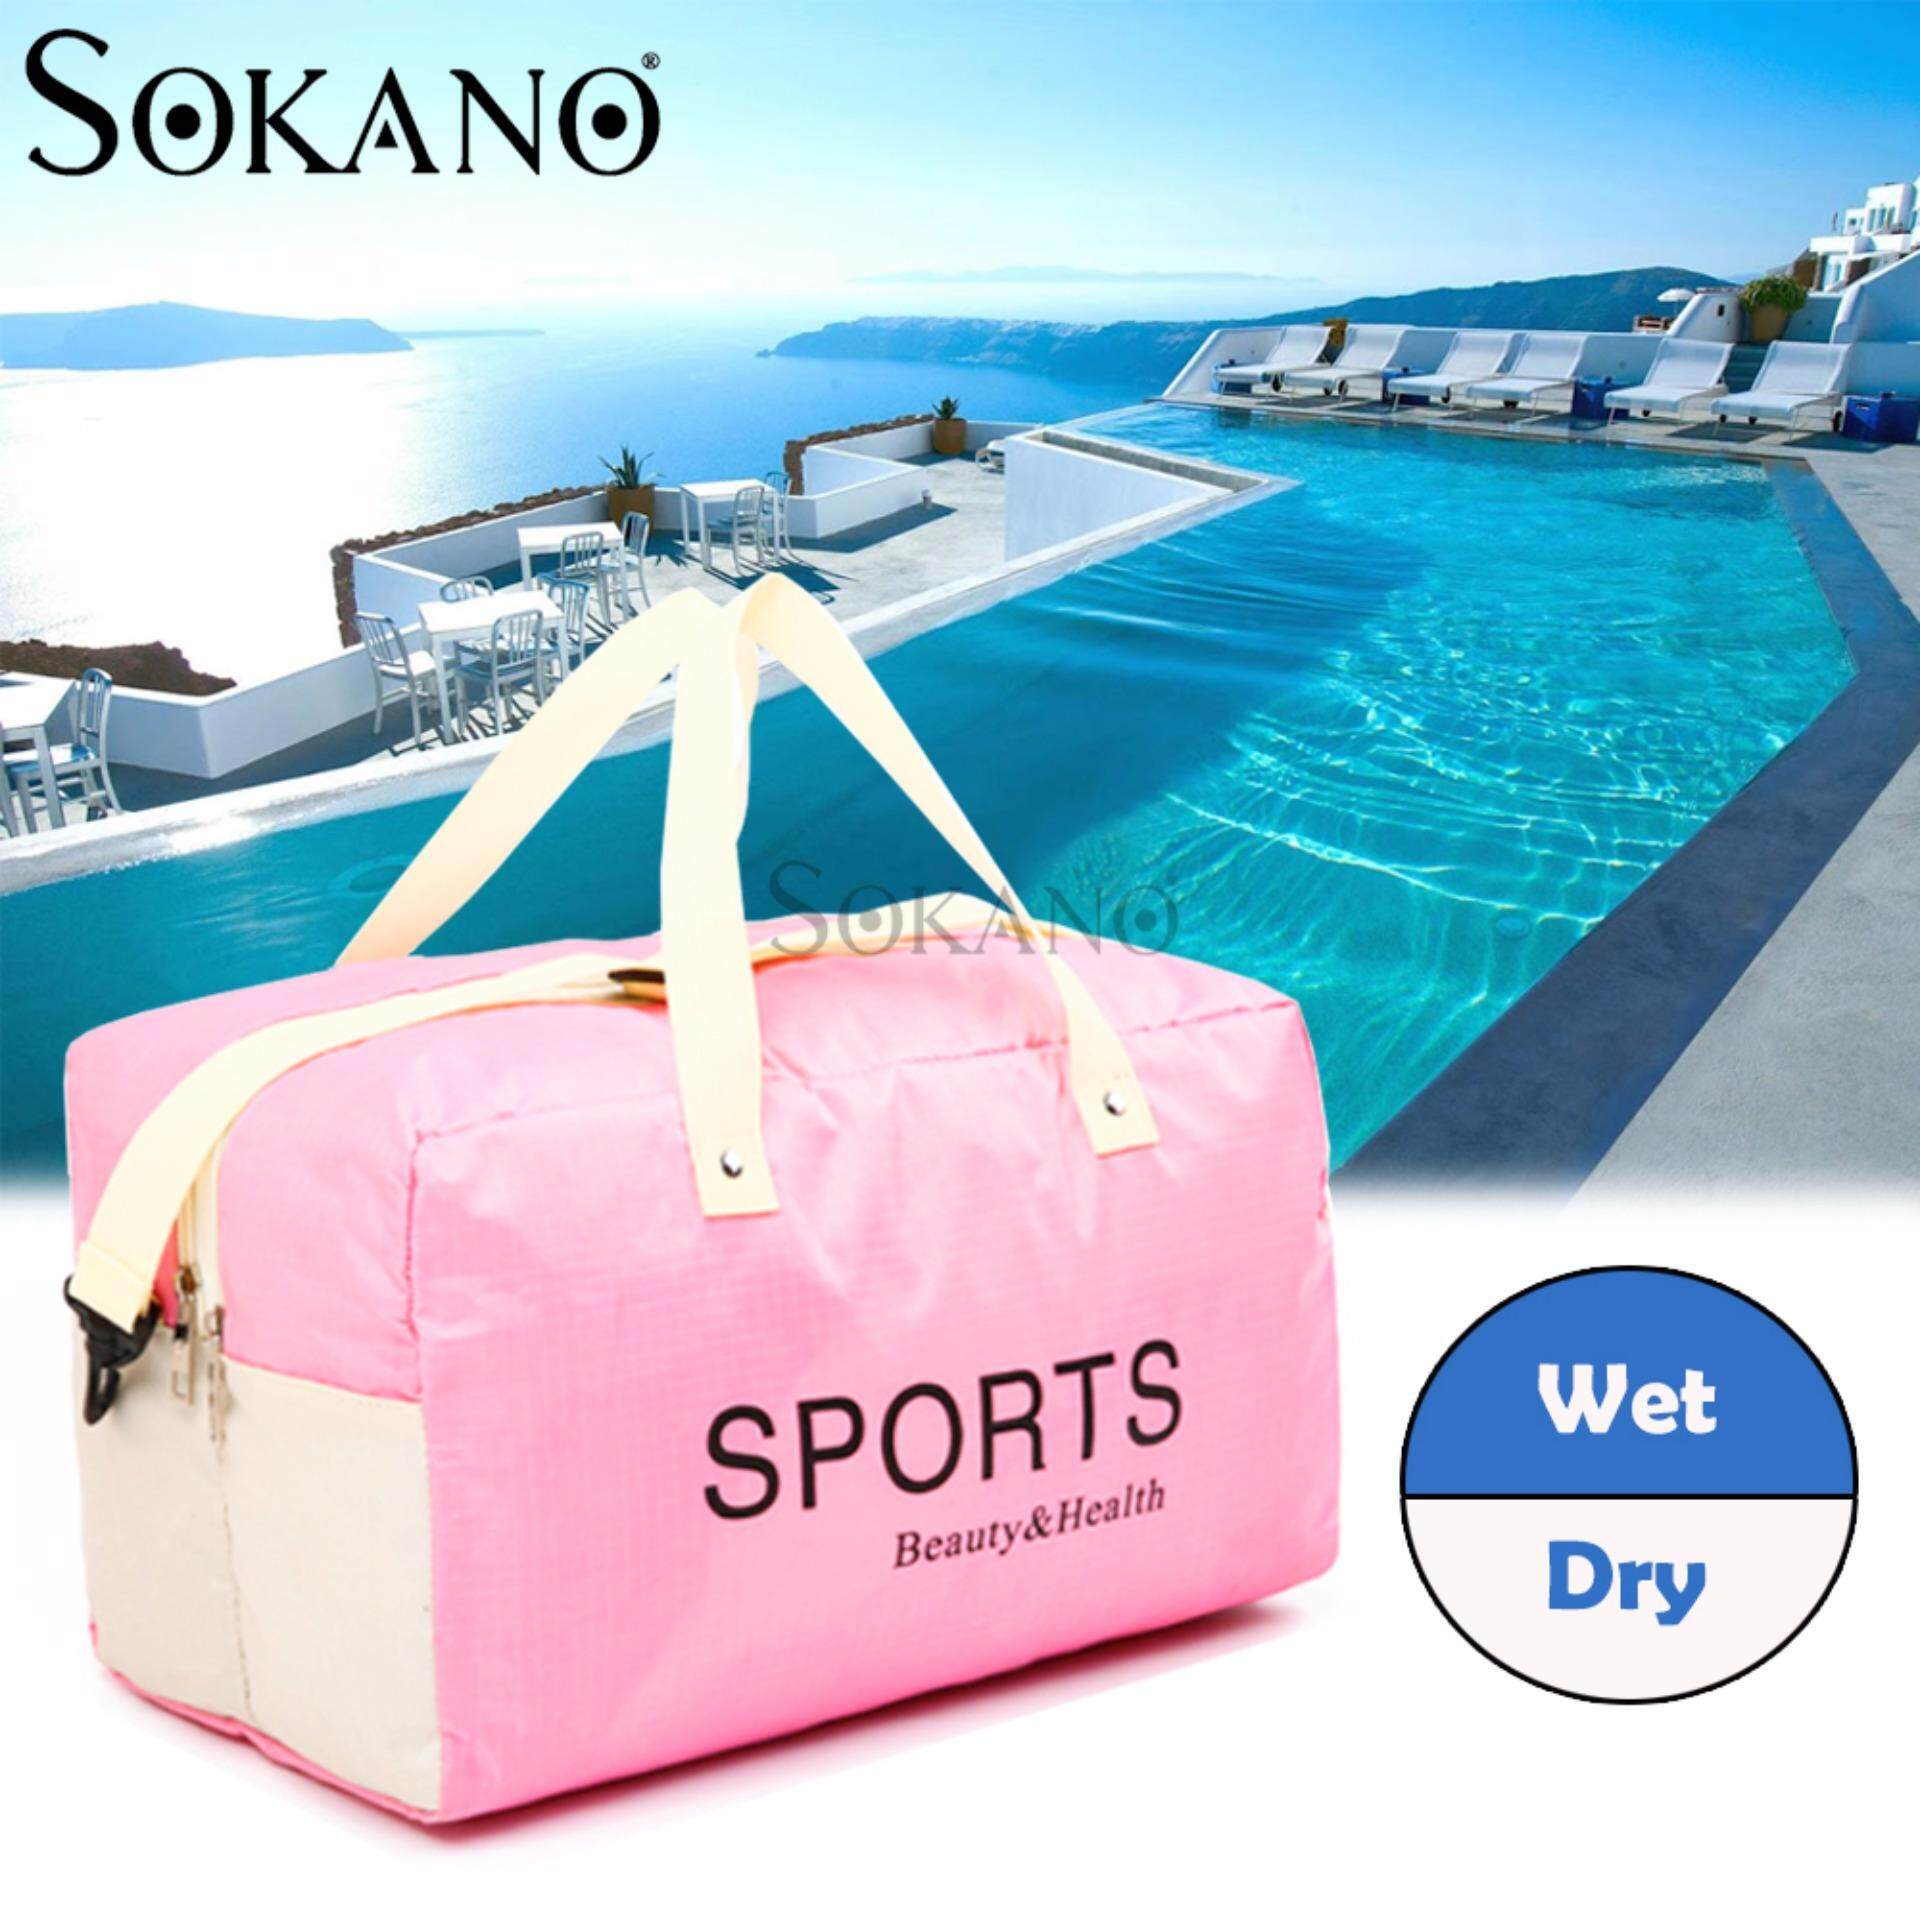 SOKANO Sports and Gym Bag with Dry and Wet Compartments - Pink